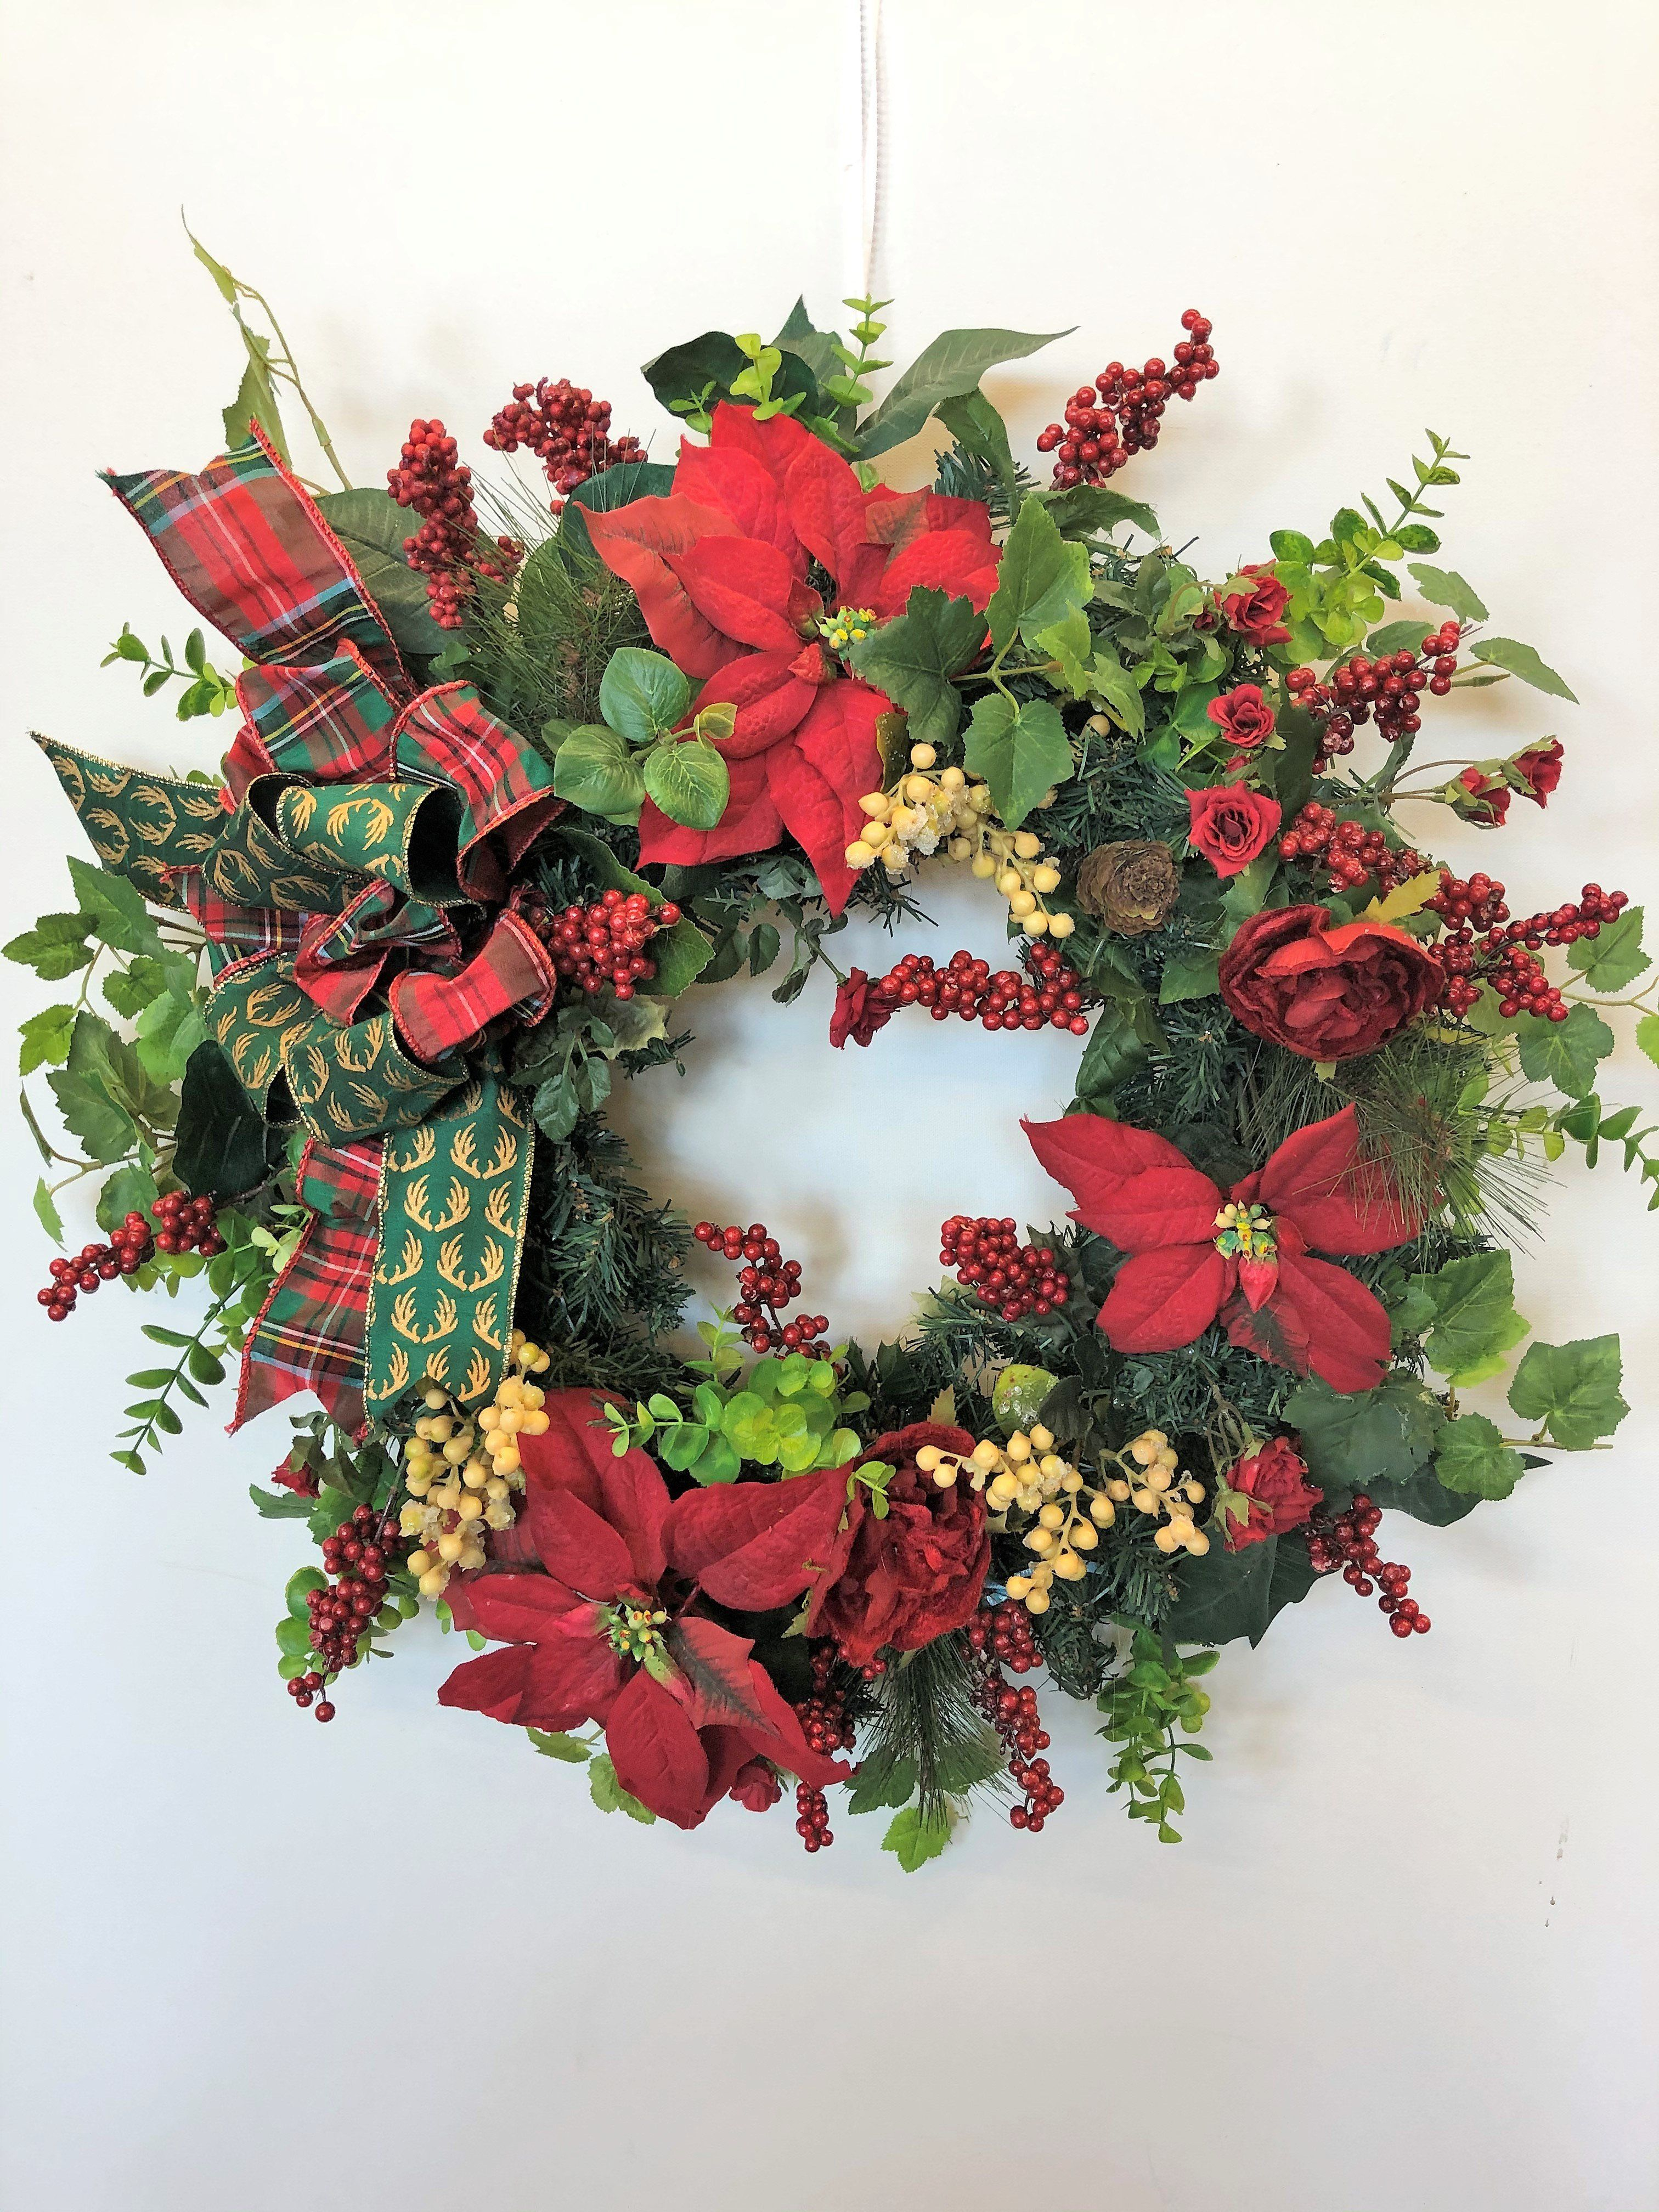 Red Rose And Poinsettia Silk Floral Holiday Christmas Wreath Hol112 In 2020 Christmas Wreaths Silk Floral Decor Wreath Store